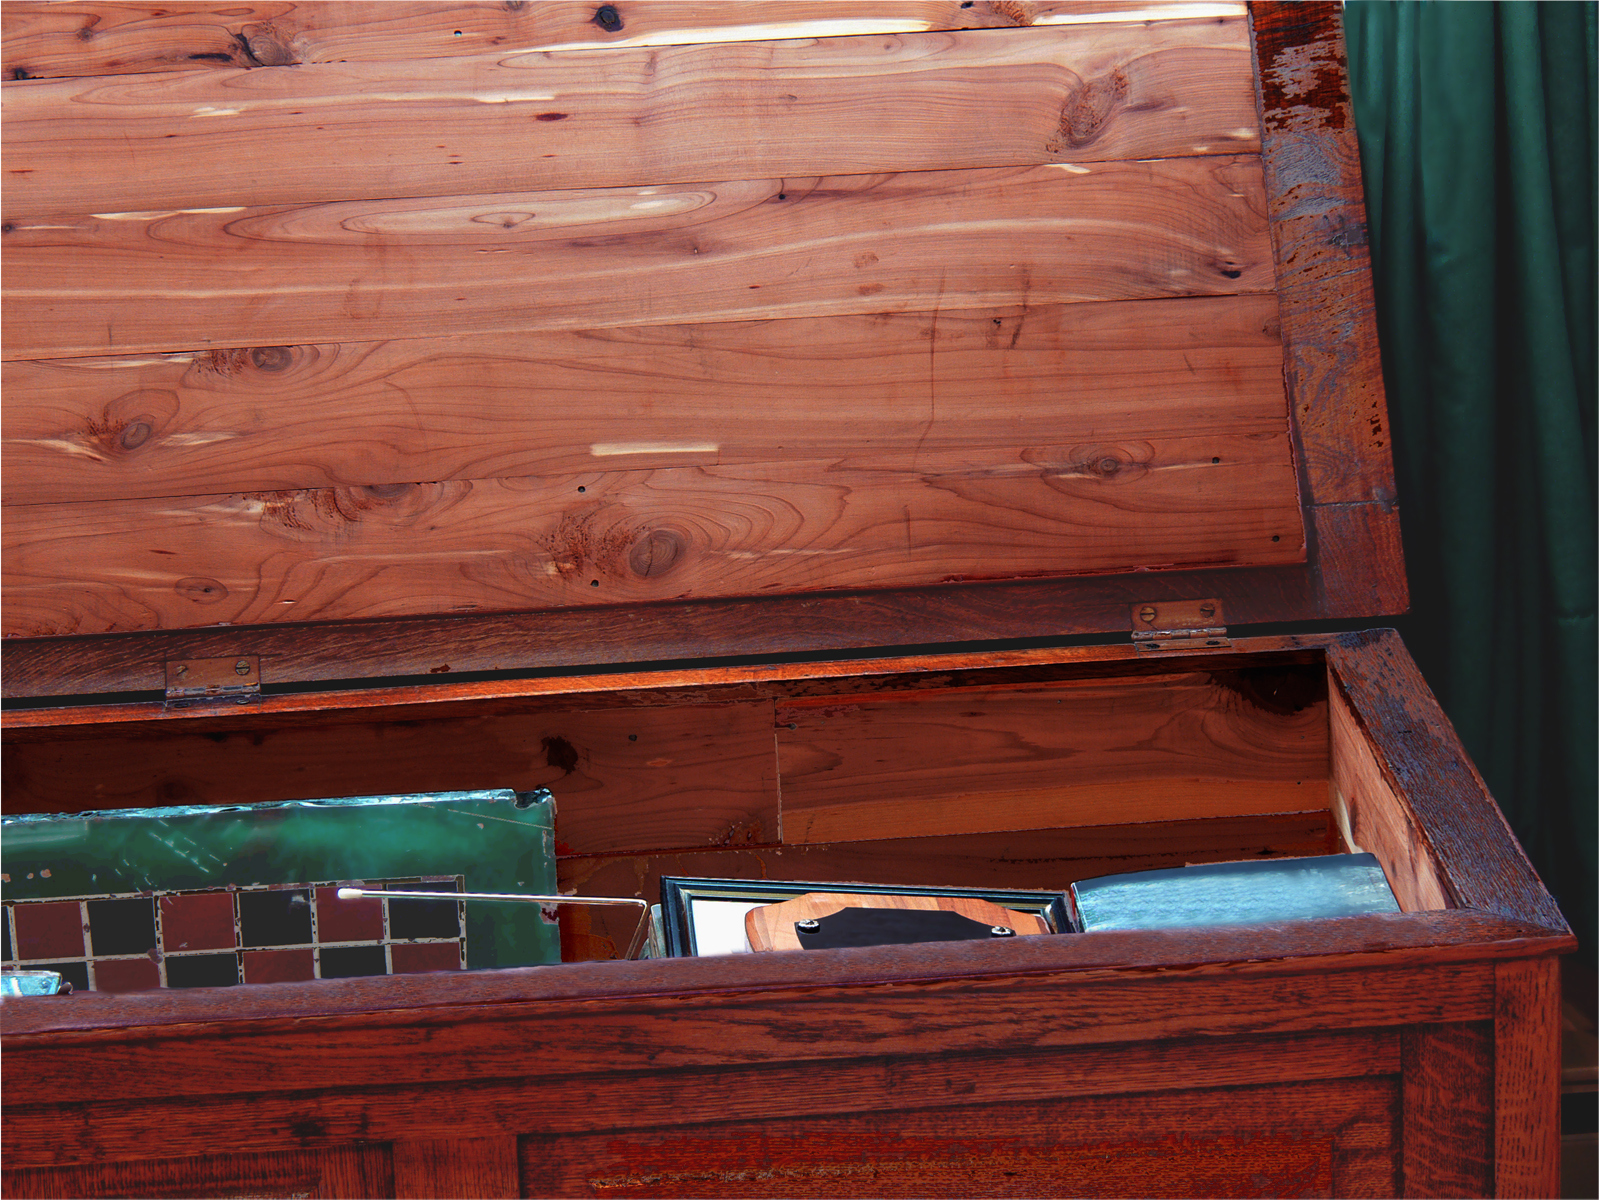 How to Get a Musty Smell Out of a Cedar Chest | Hunker